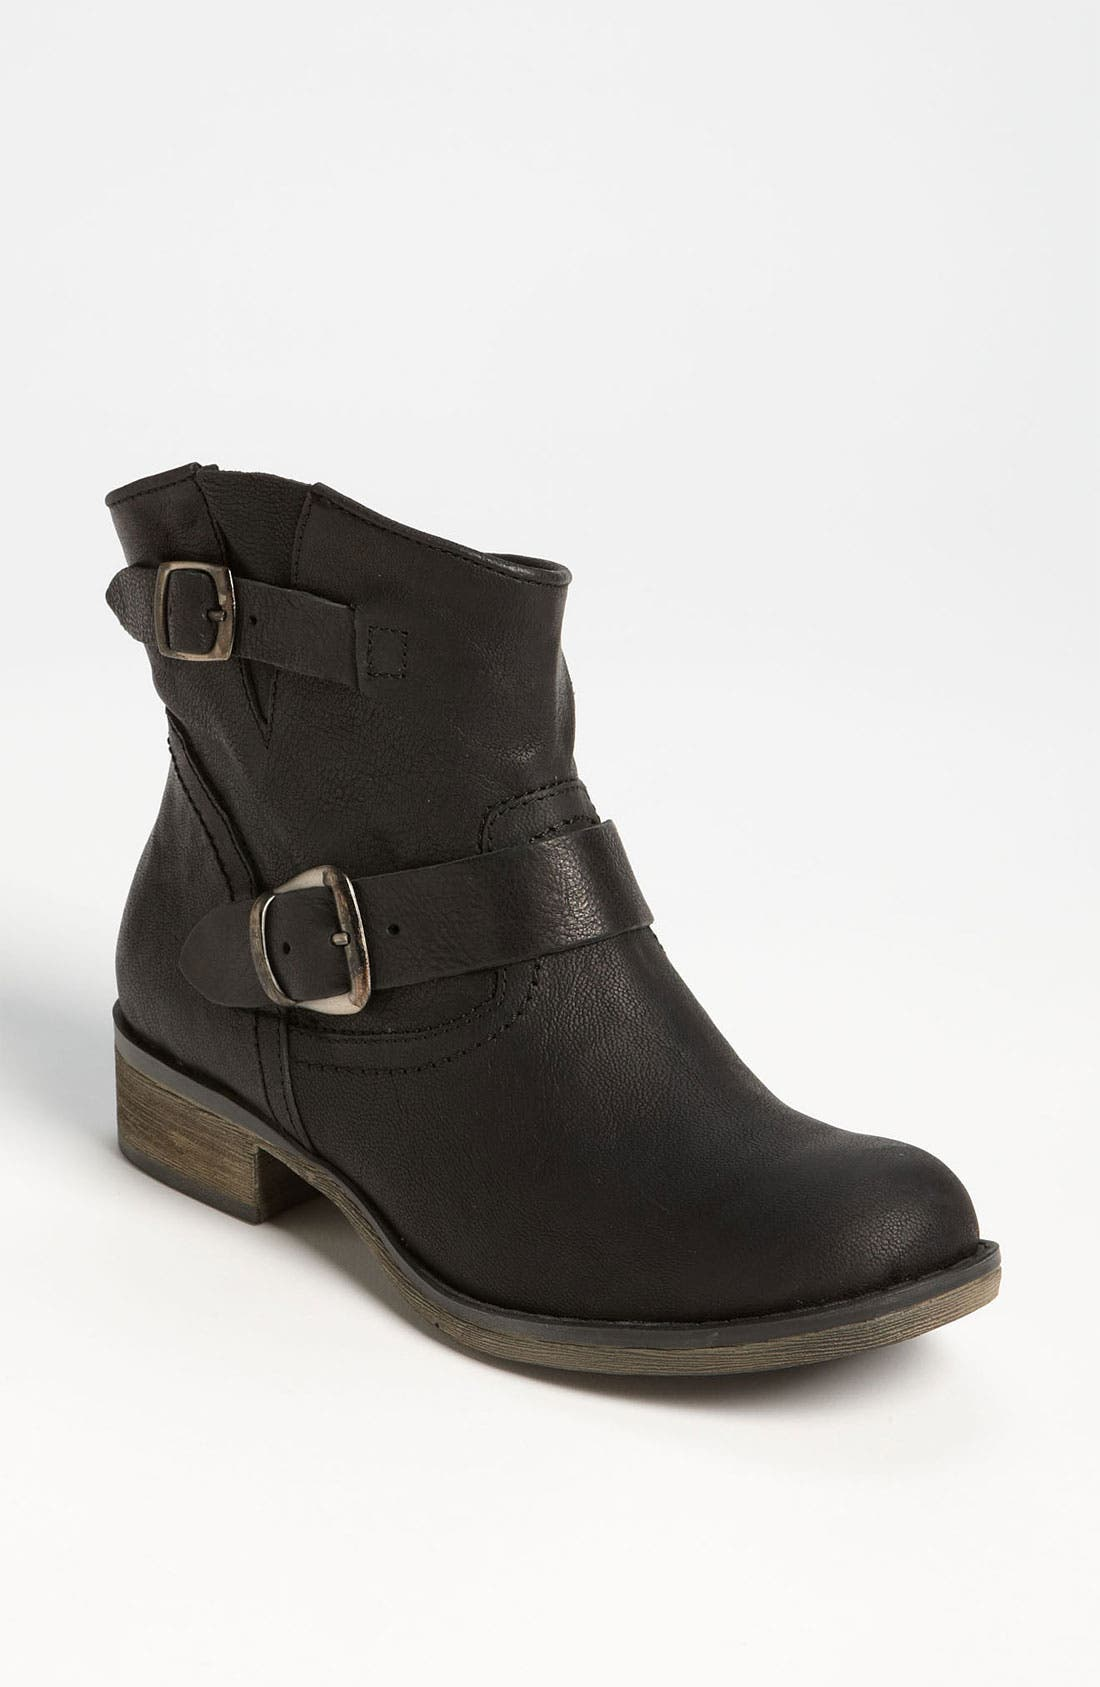 Alternate Image 1 Selected - REPORT 'Jude' Ankle Boot